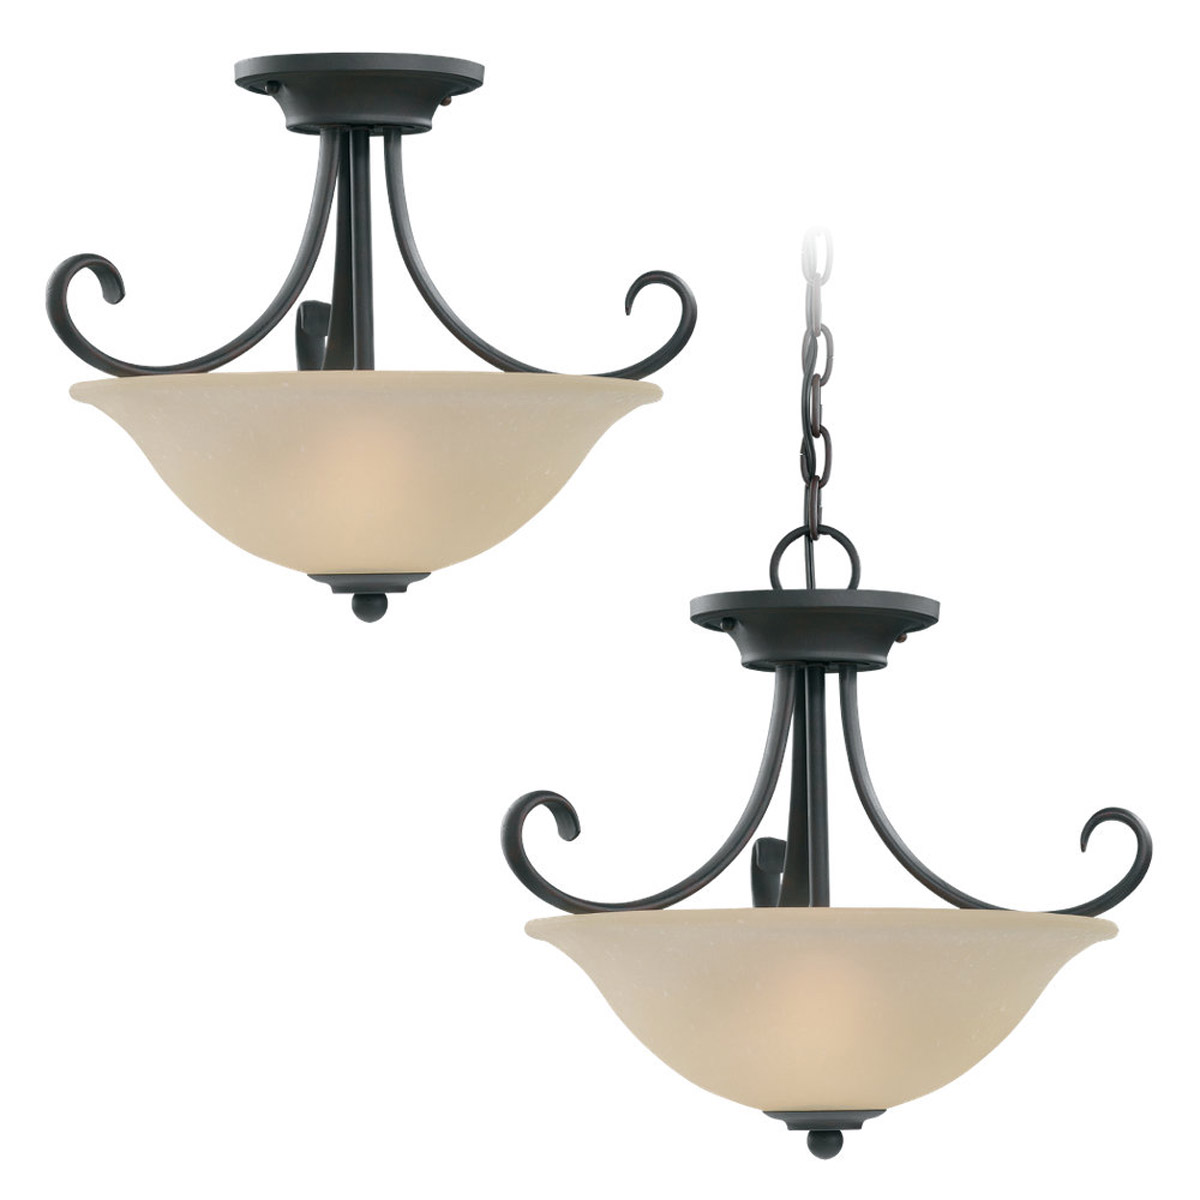 Sea Gull Lighting Del Prato 2 Light Convertible Semi-Flush Mount in Misted Bronze 51120-814